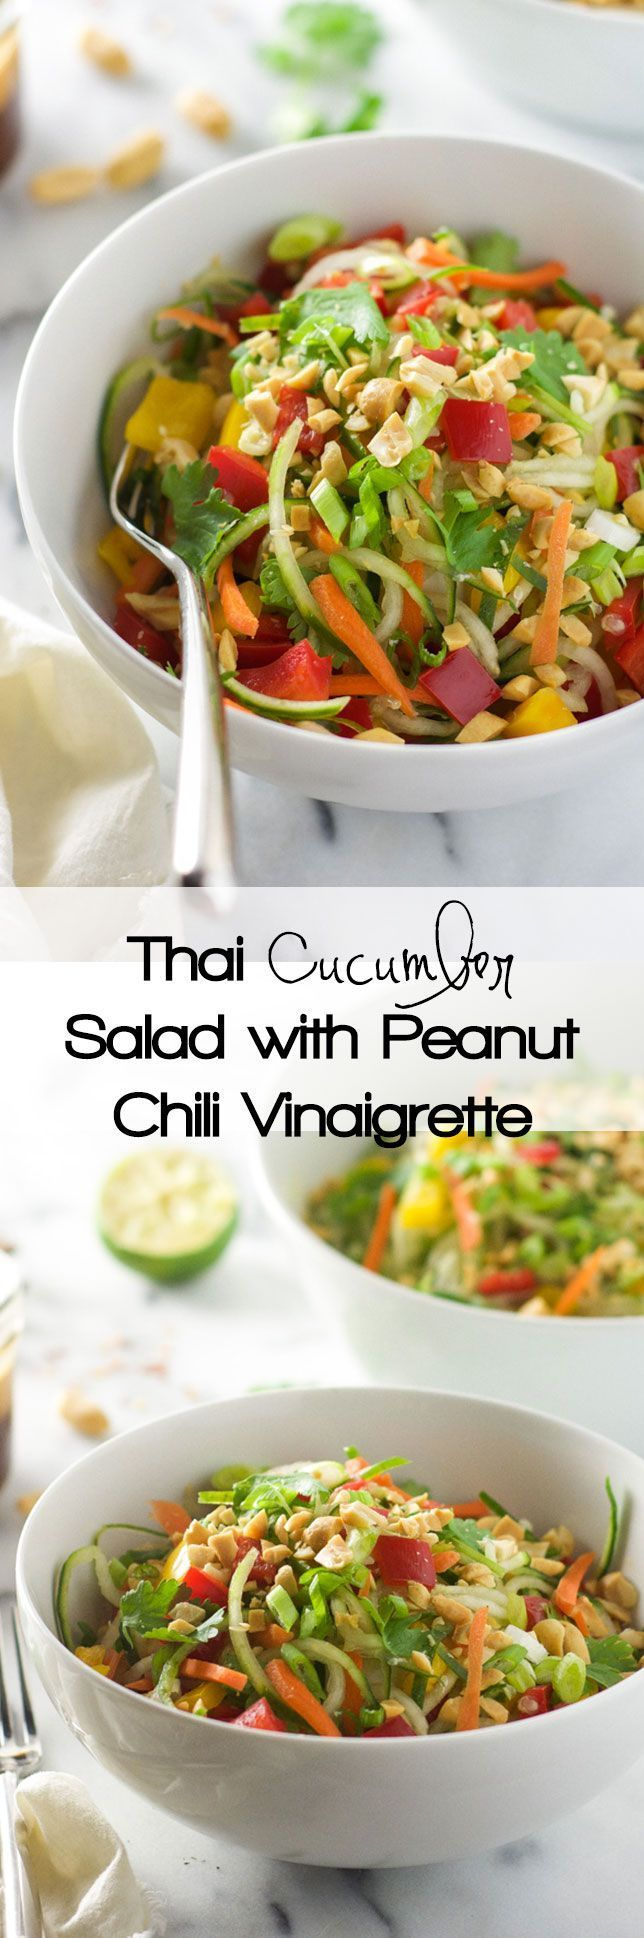 Thai Cucumber Salad with Peanut Chili Vinaigrette is a light and flavorful salad with a sweet and spicy dressing and loaded with vegetables!: